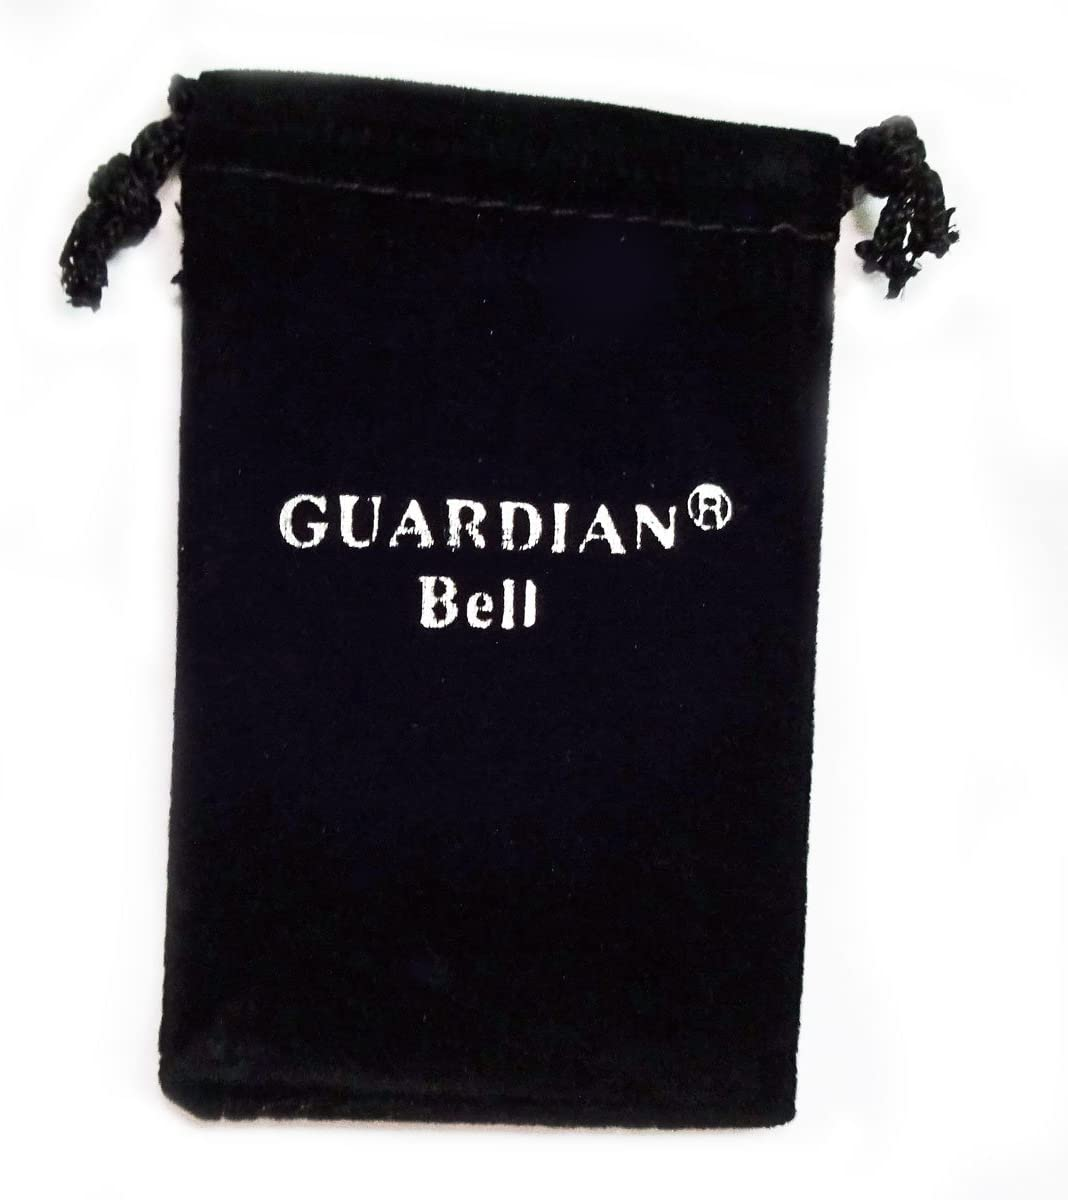 Guardian This Bike Protected Motorcycle Biker Luck Gremlin Riding Bell or Key Ring 2